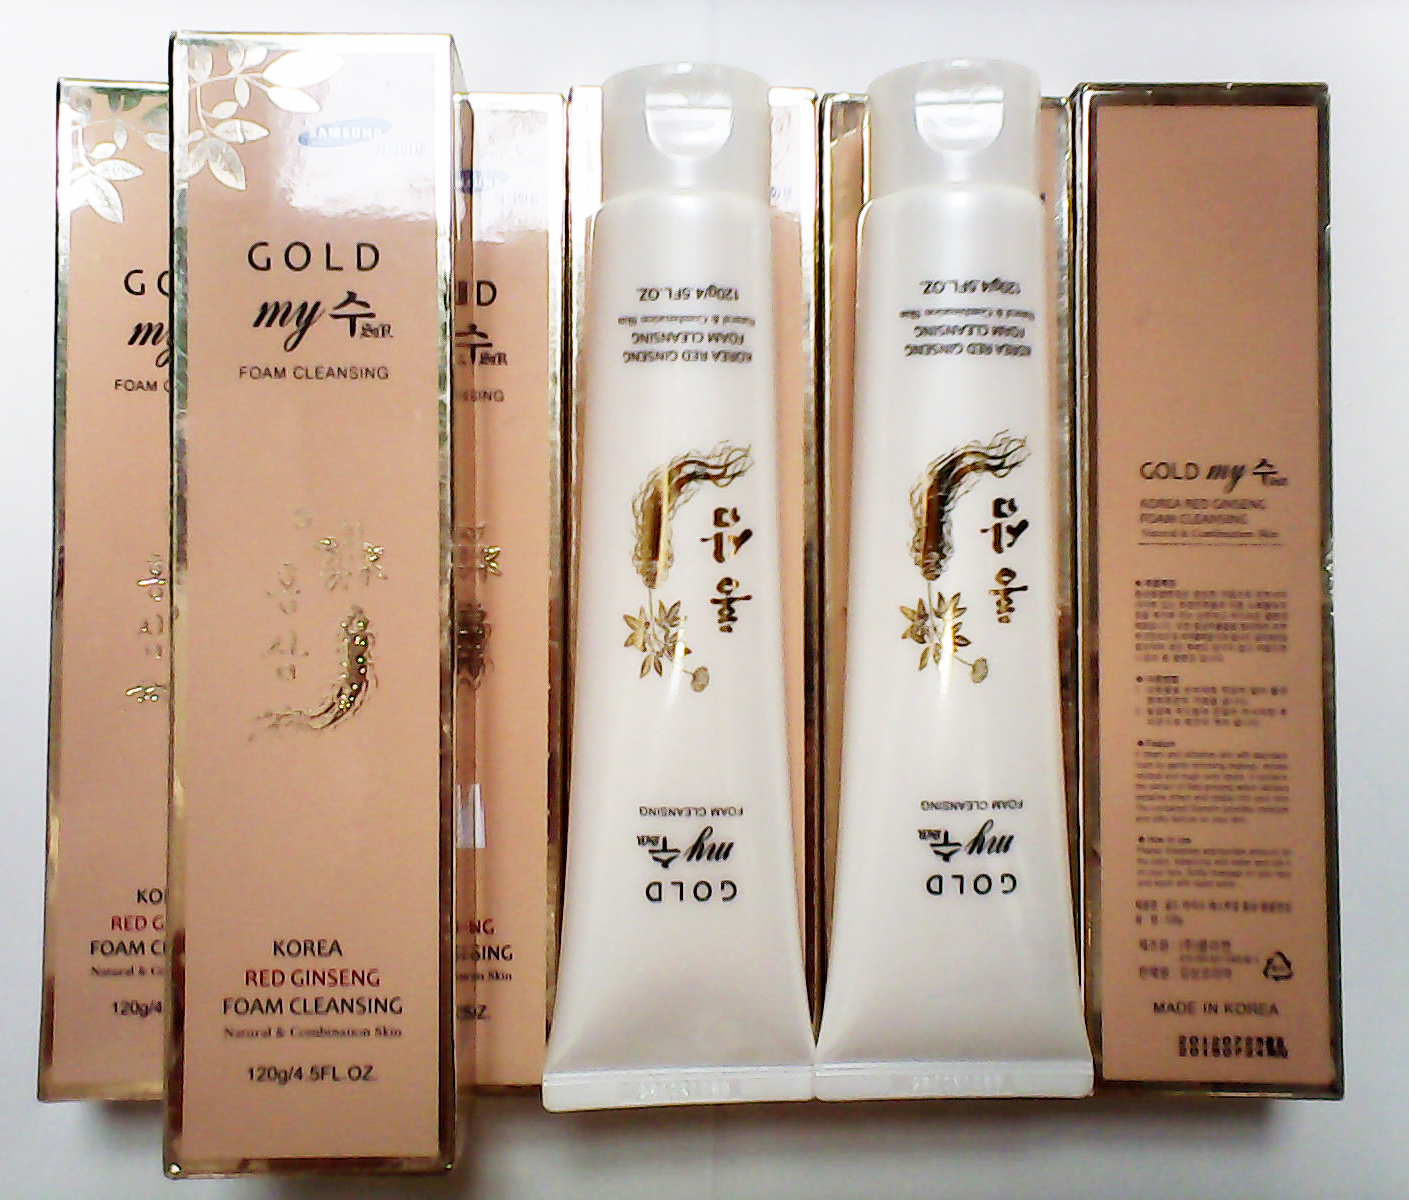 Sữa rửa mặt sâm My Gold Korean Red Ginseng Foam Cleansing​